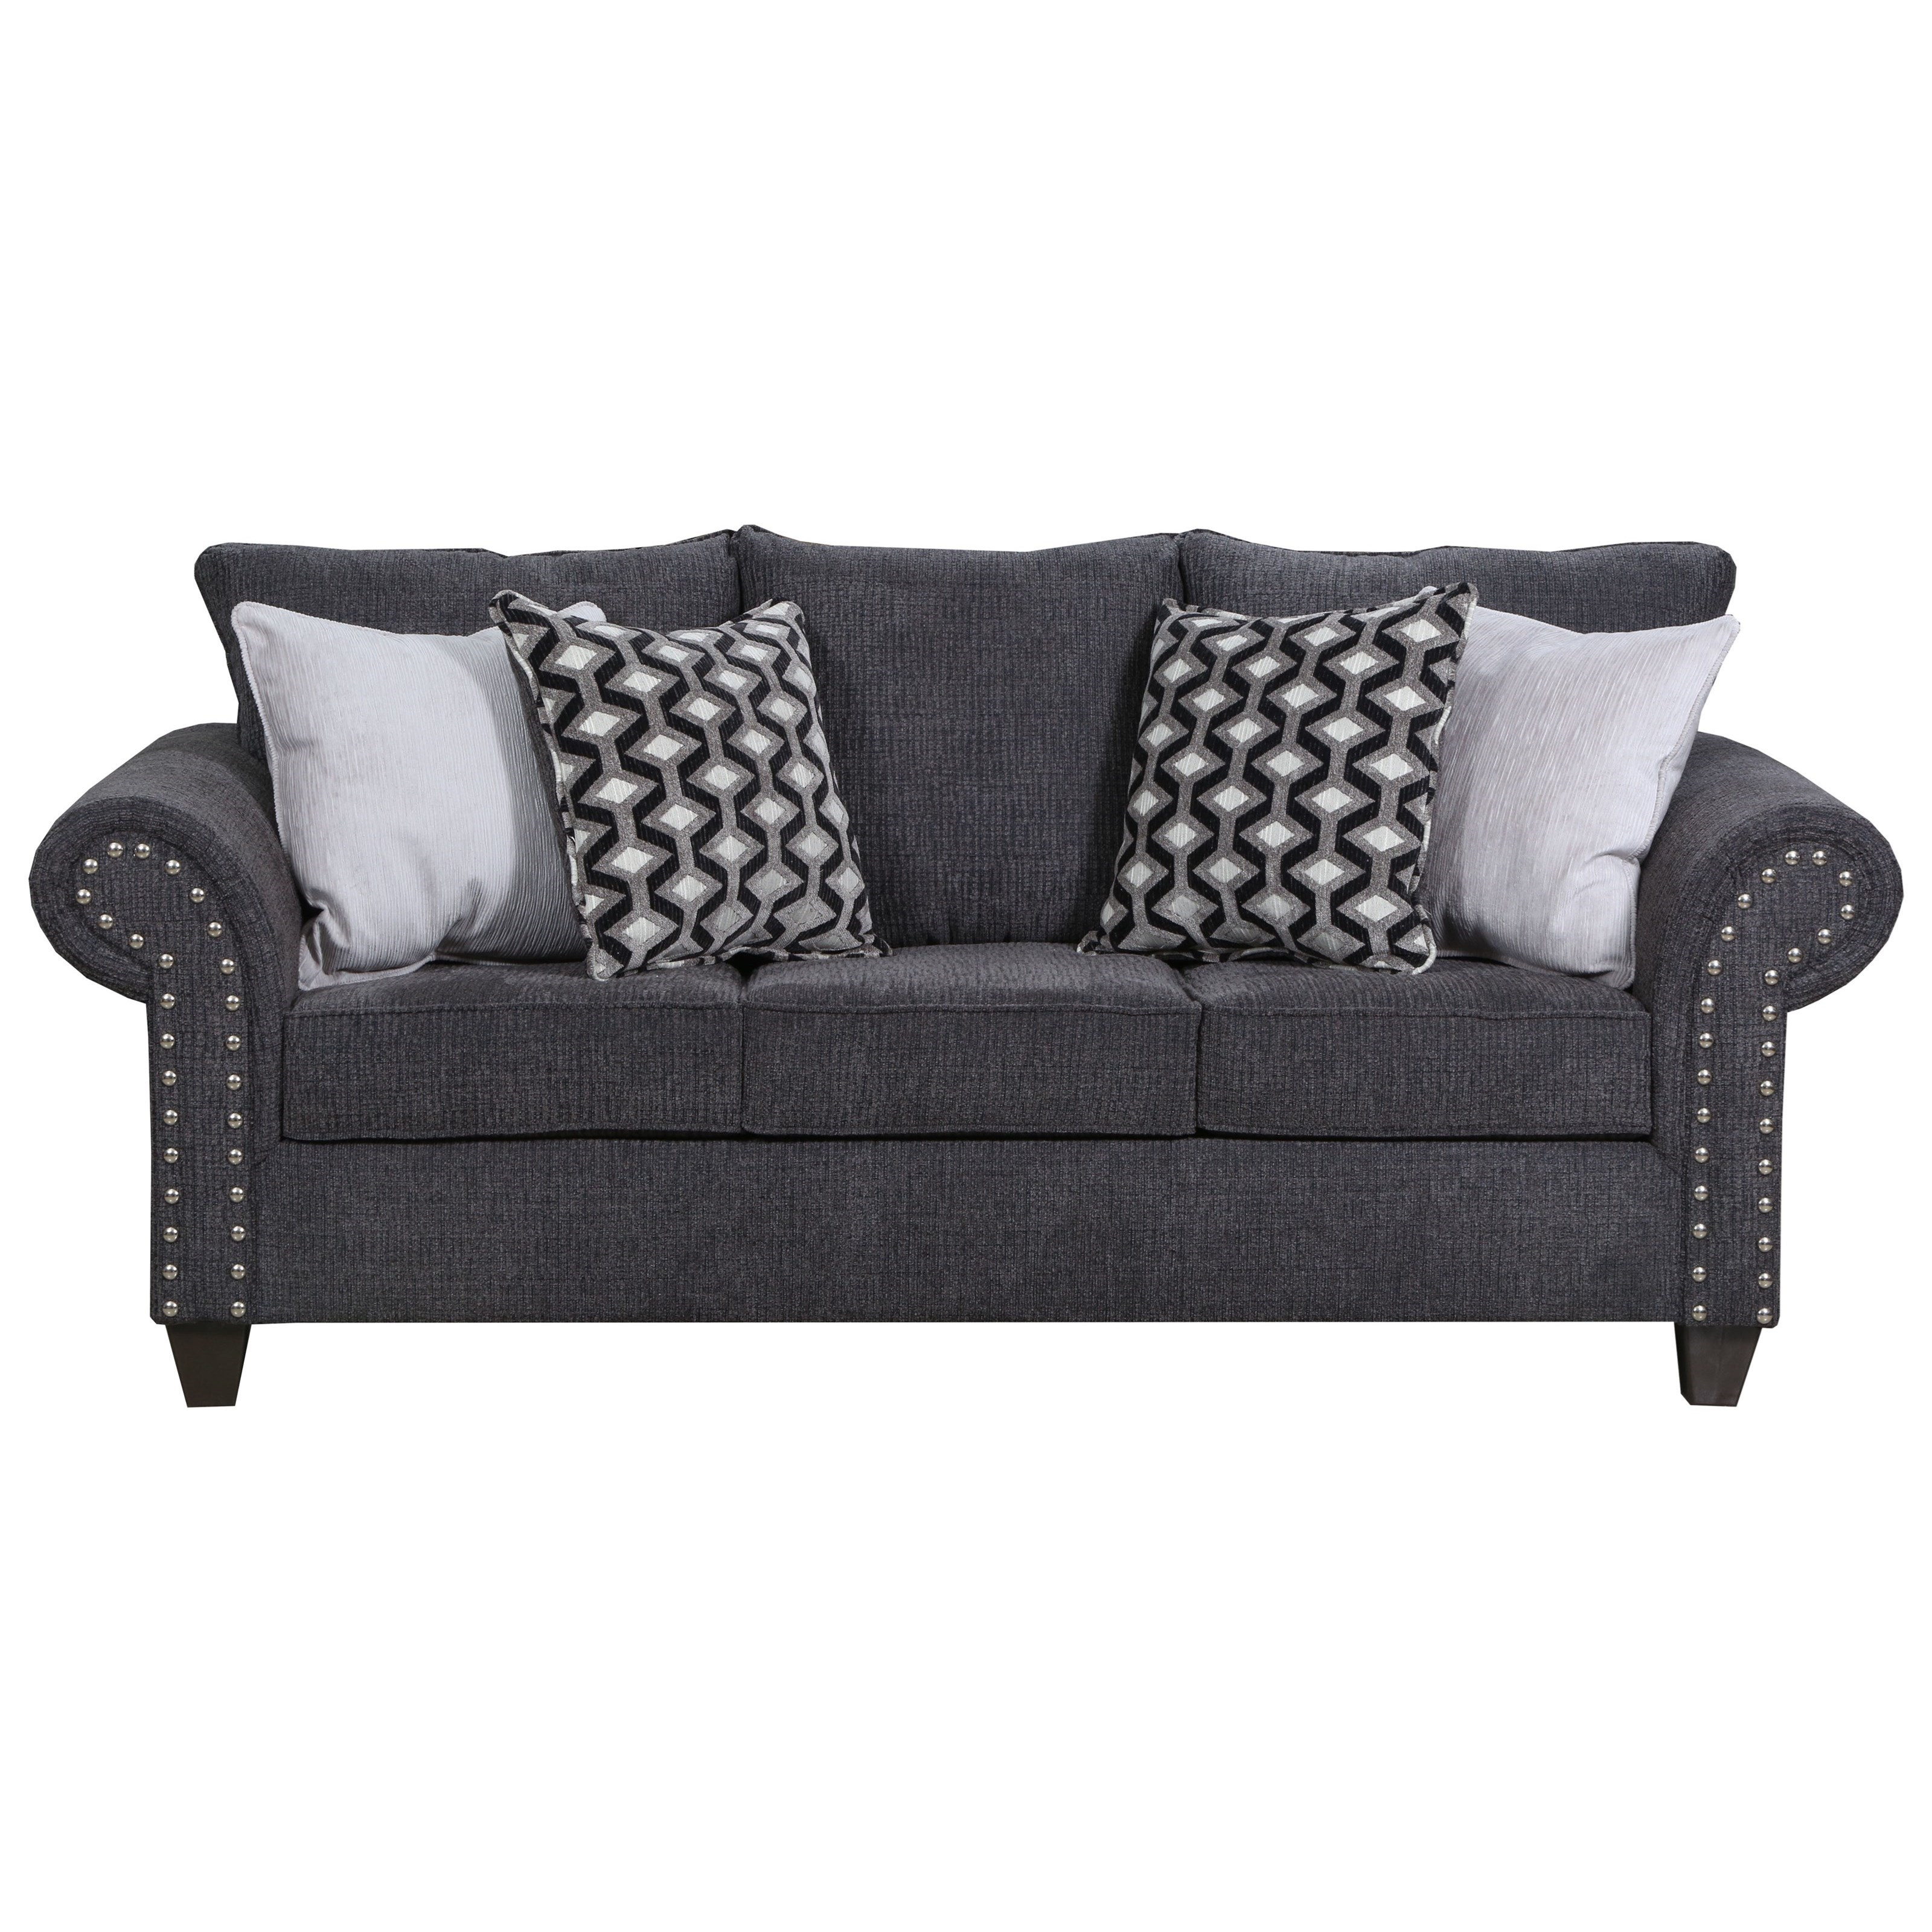 8036 Sofa by United Furniture Industries at Dream Home Interiors